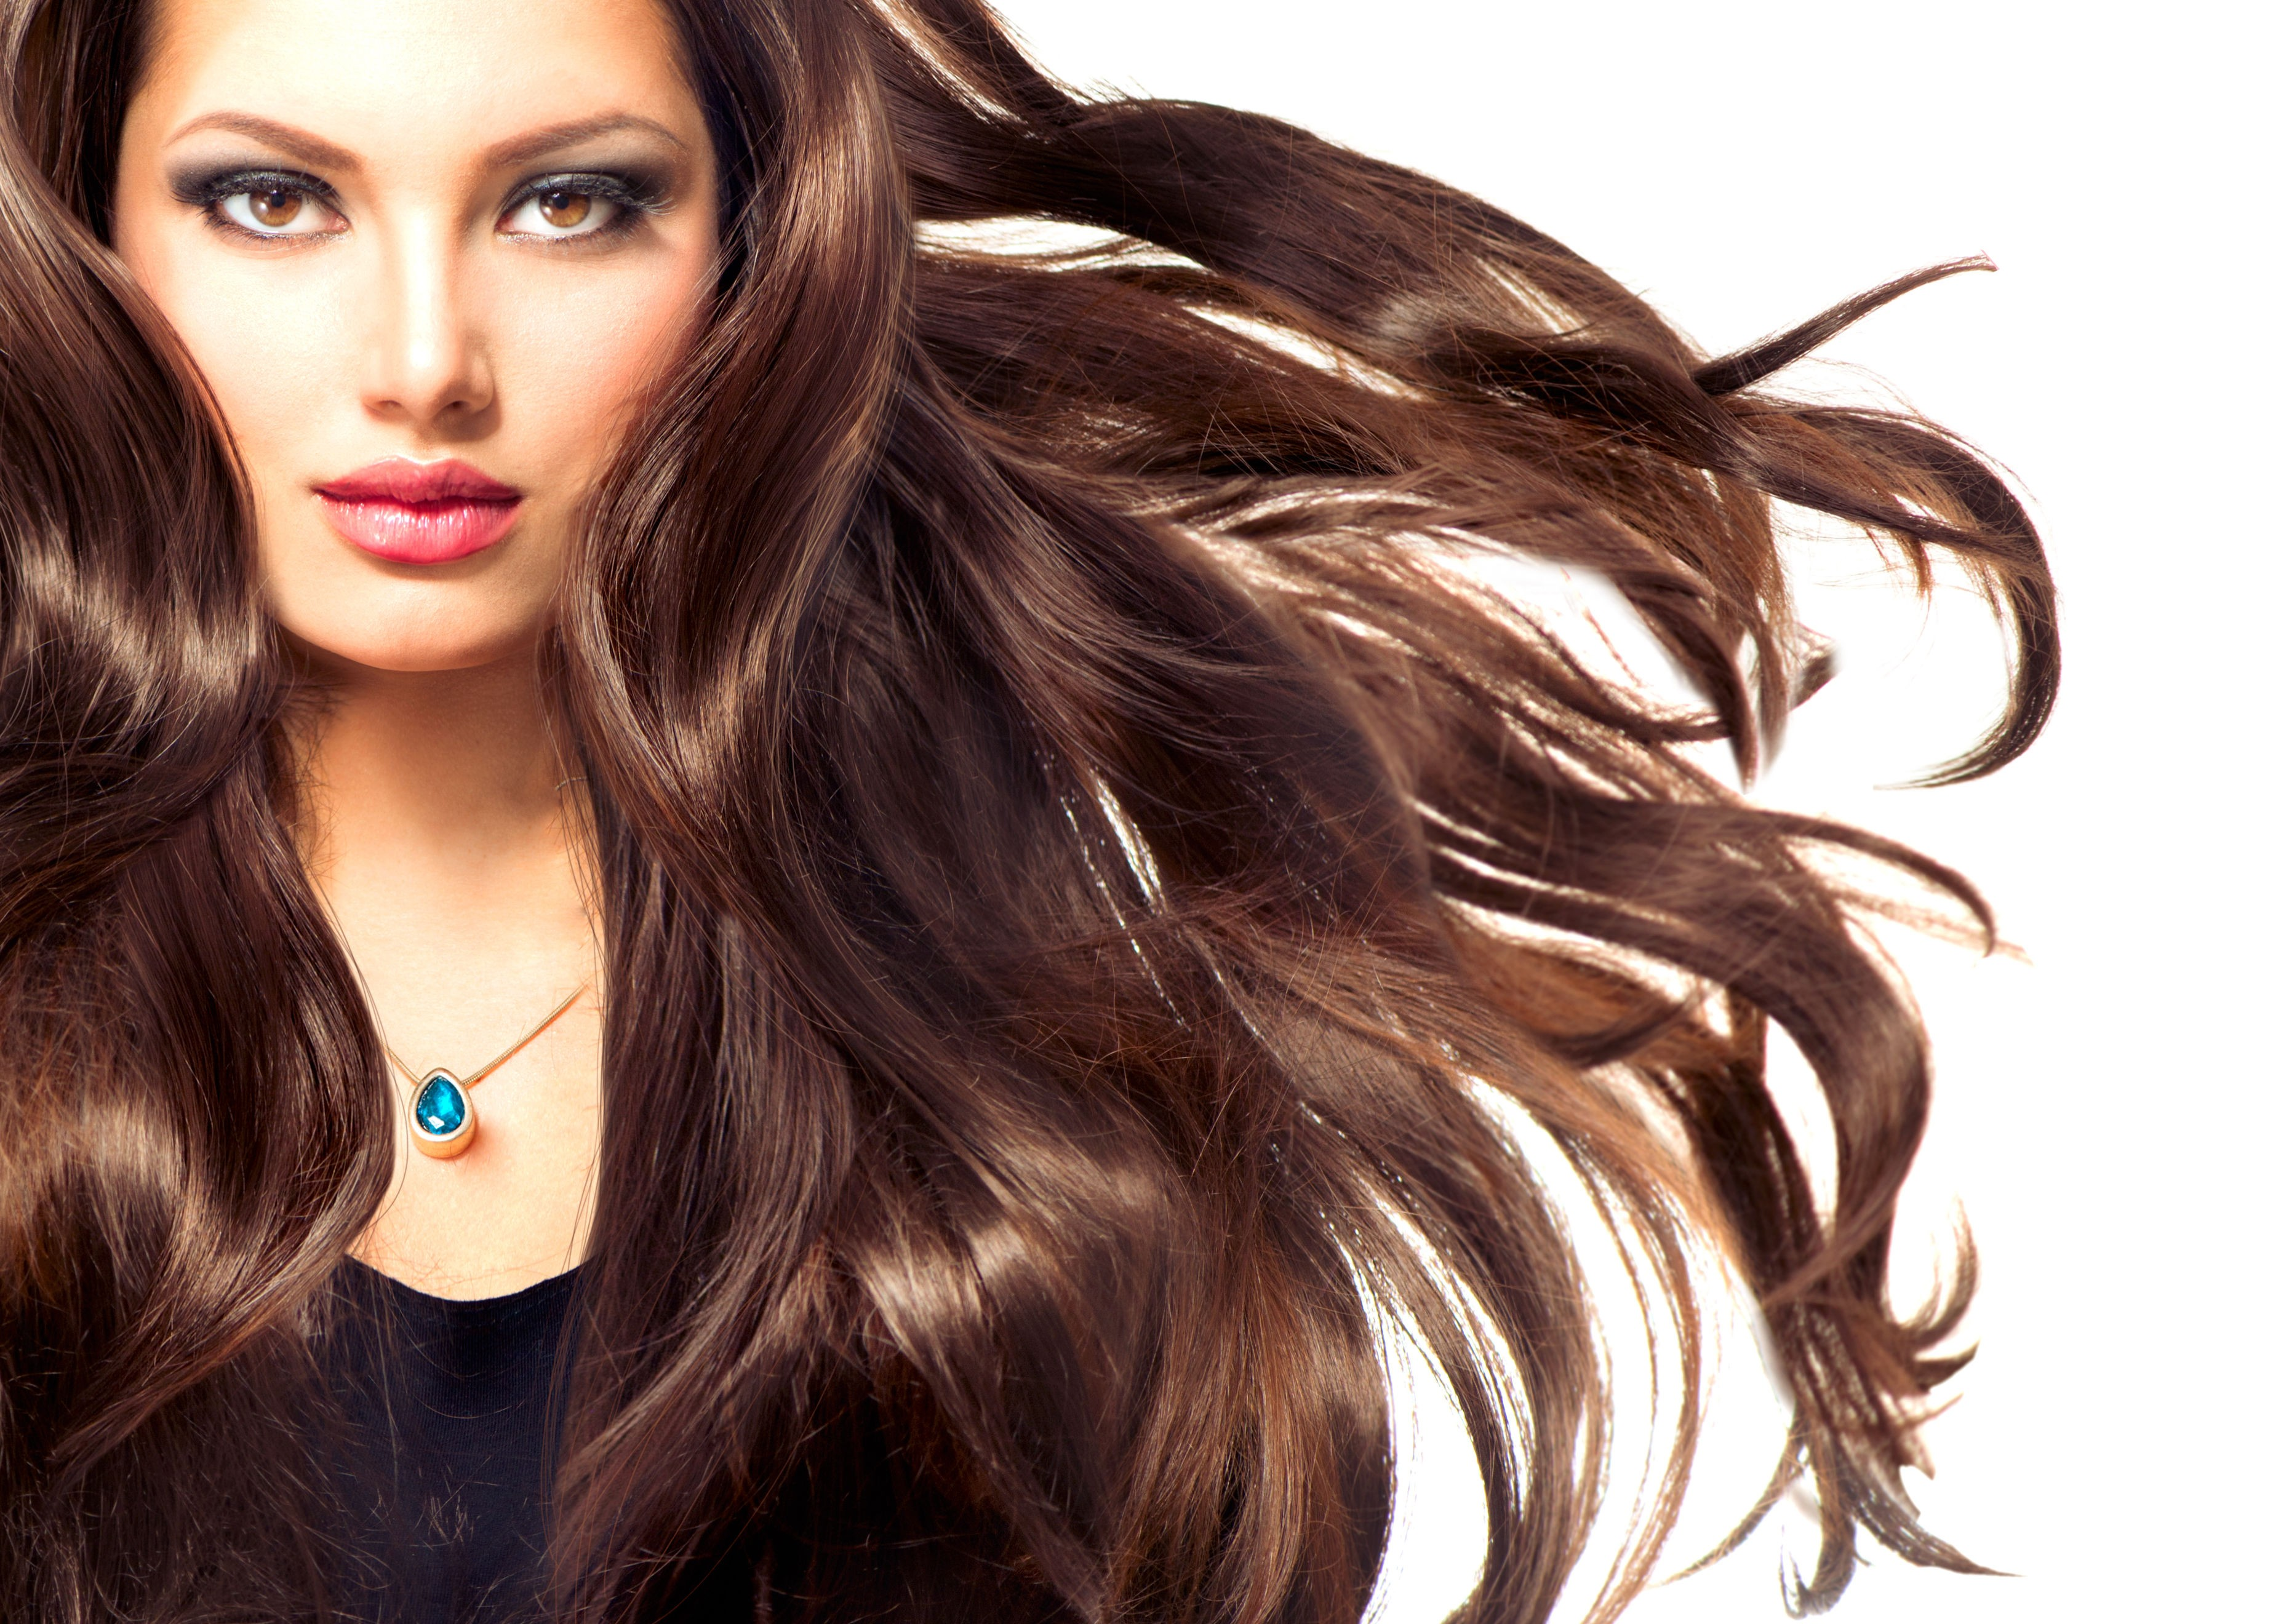 hair styling free how to choose a shampoo and conditioner for your hair type 9225